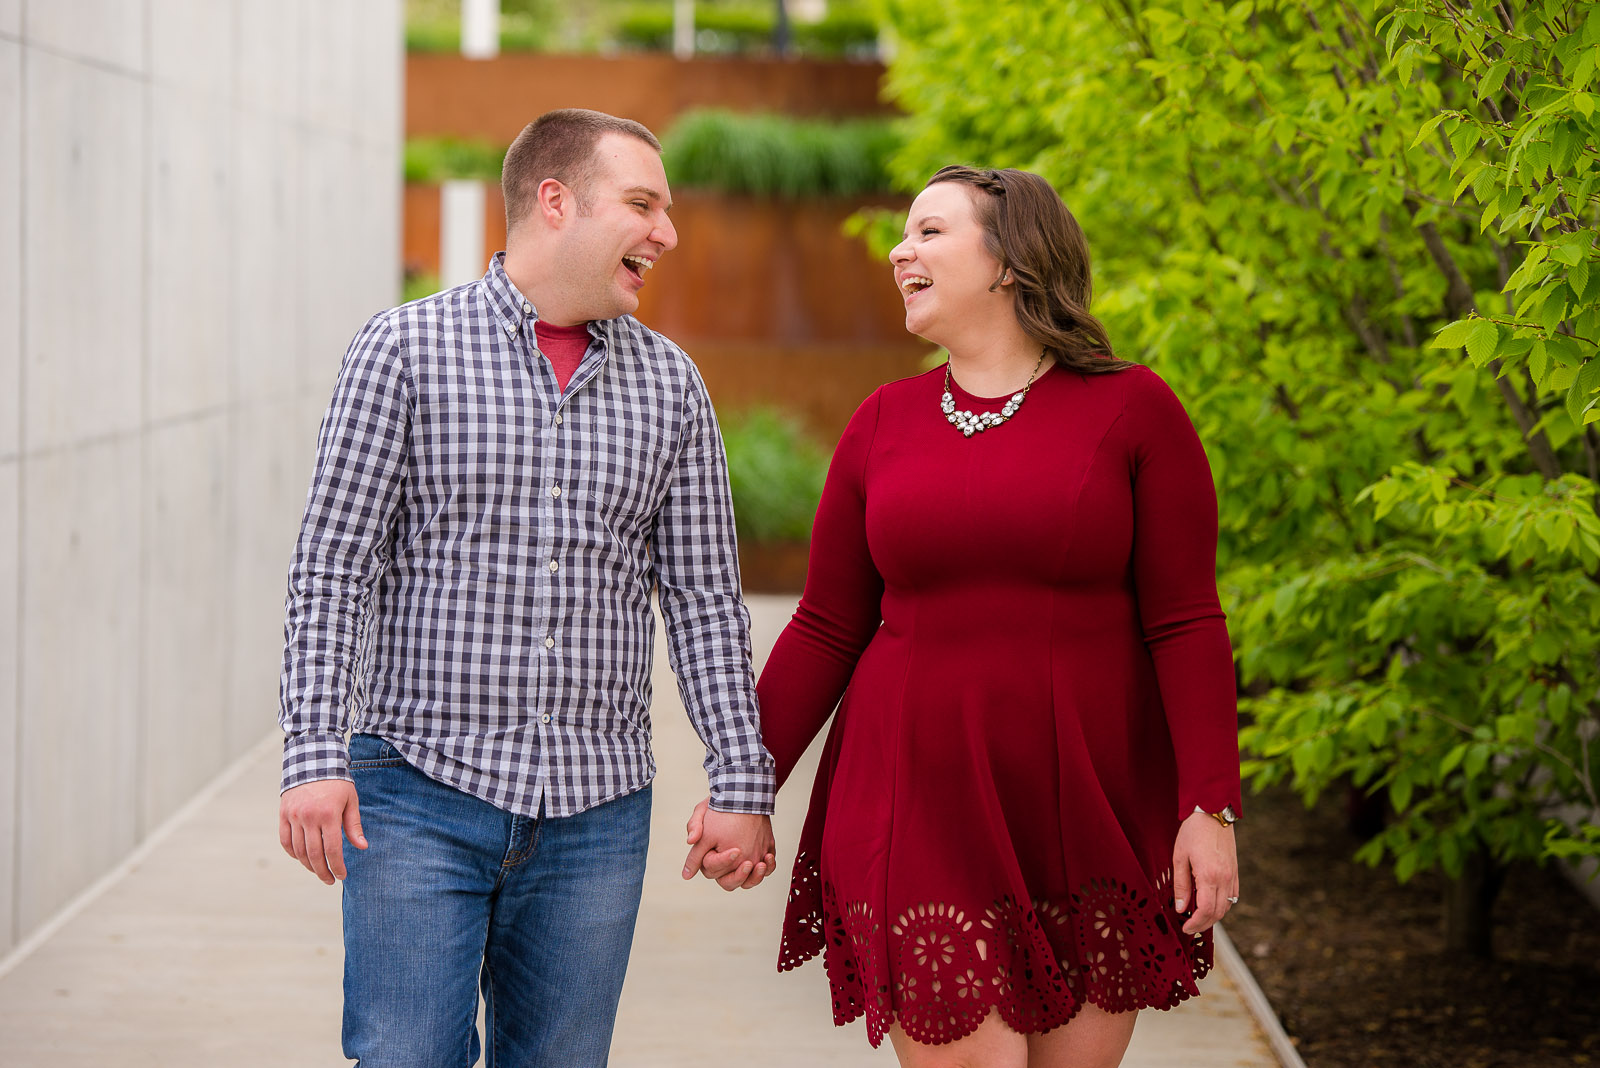 Eric_and_Christy_Photography_Blog_Stacey_Geoff_Engagement-10